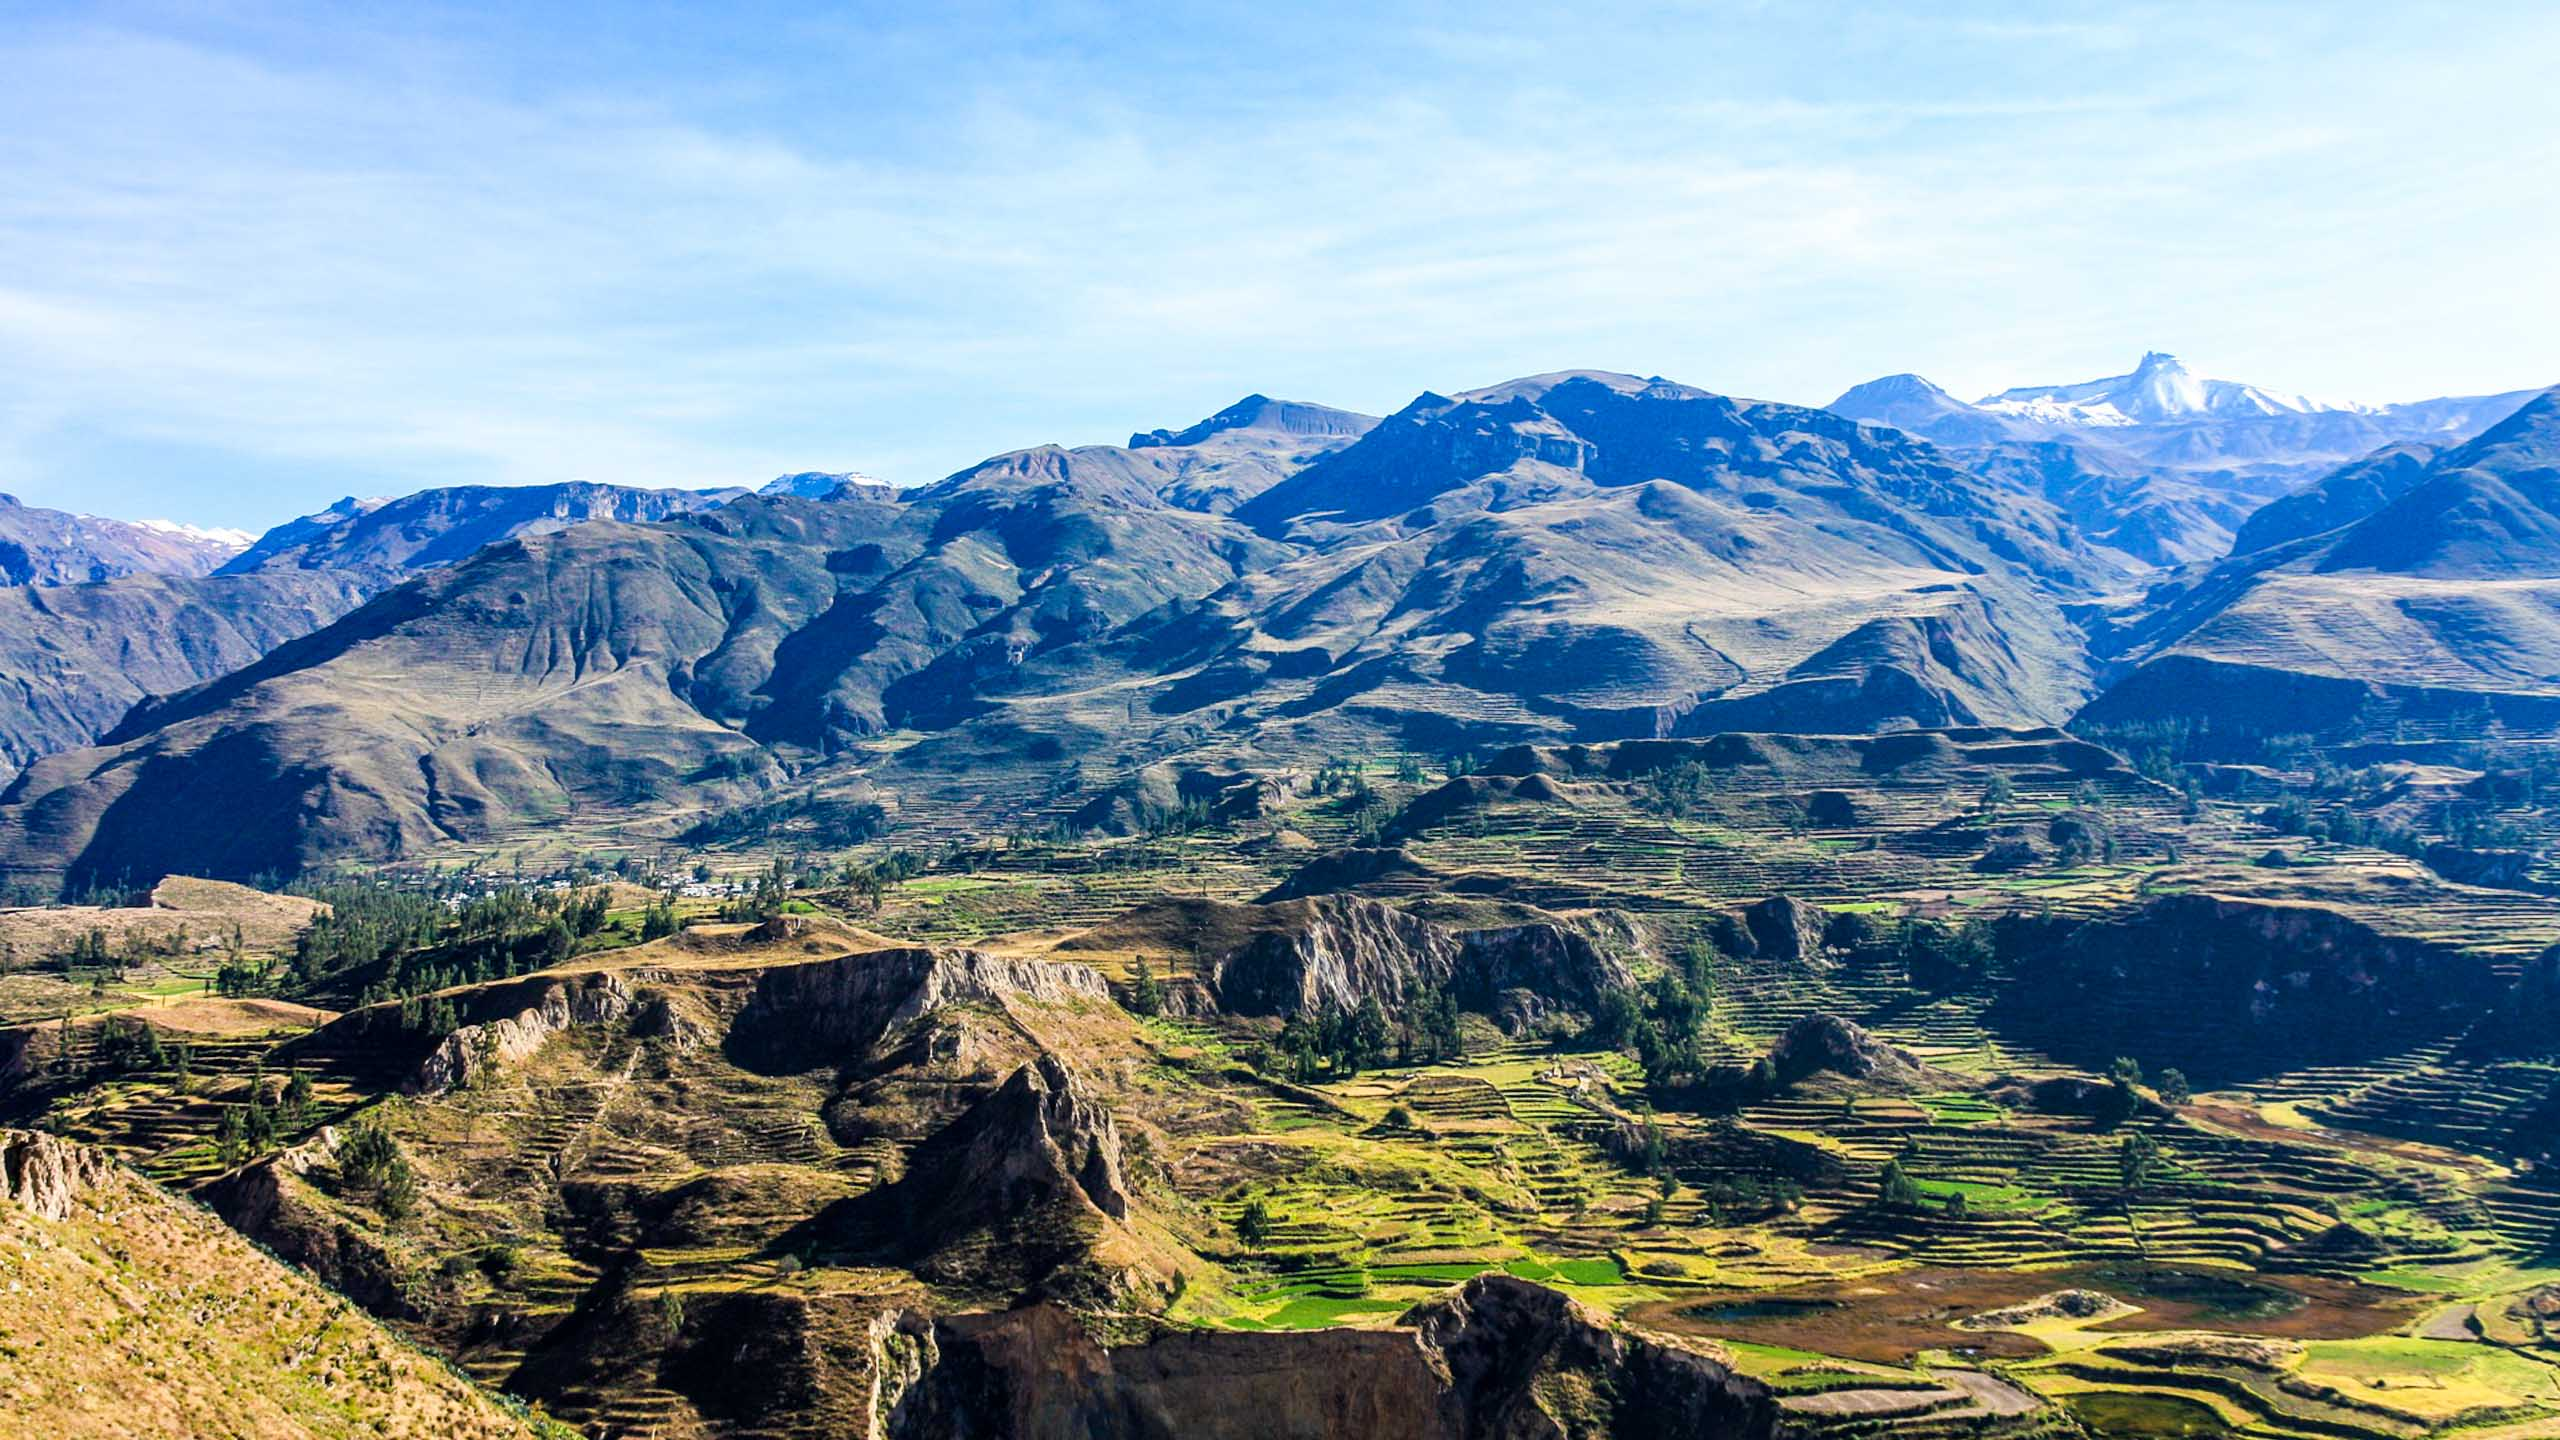 View over Colca Canyon in Peru